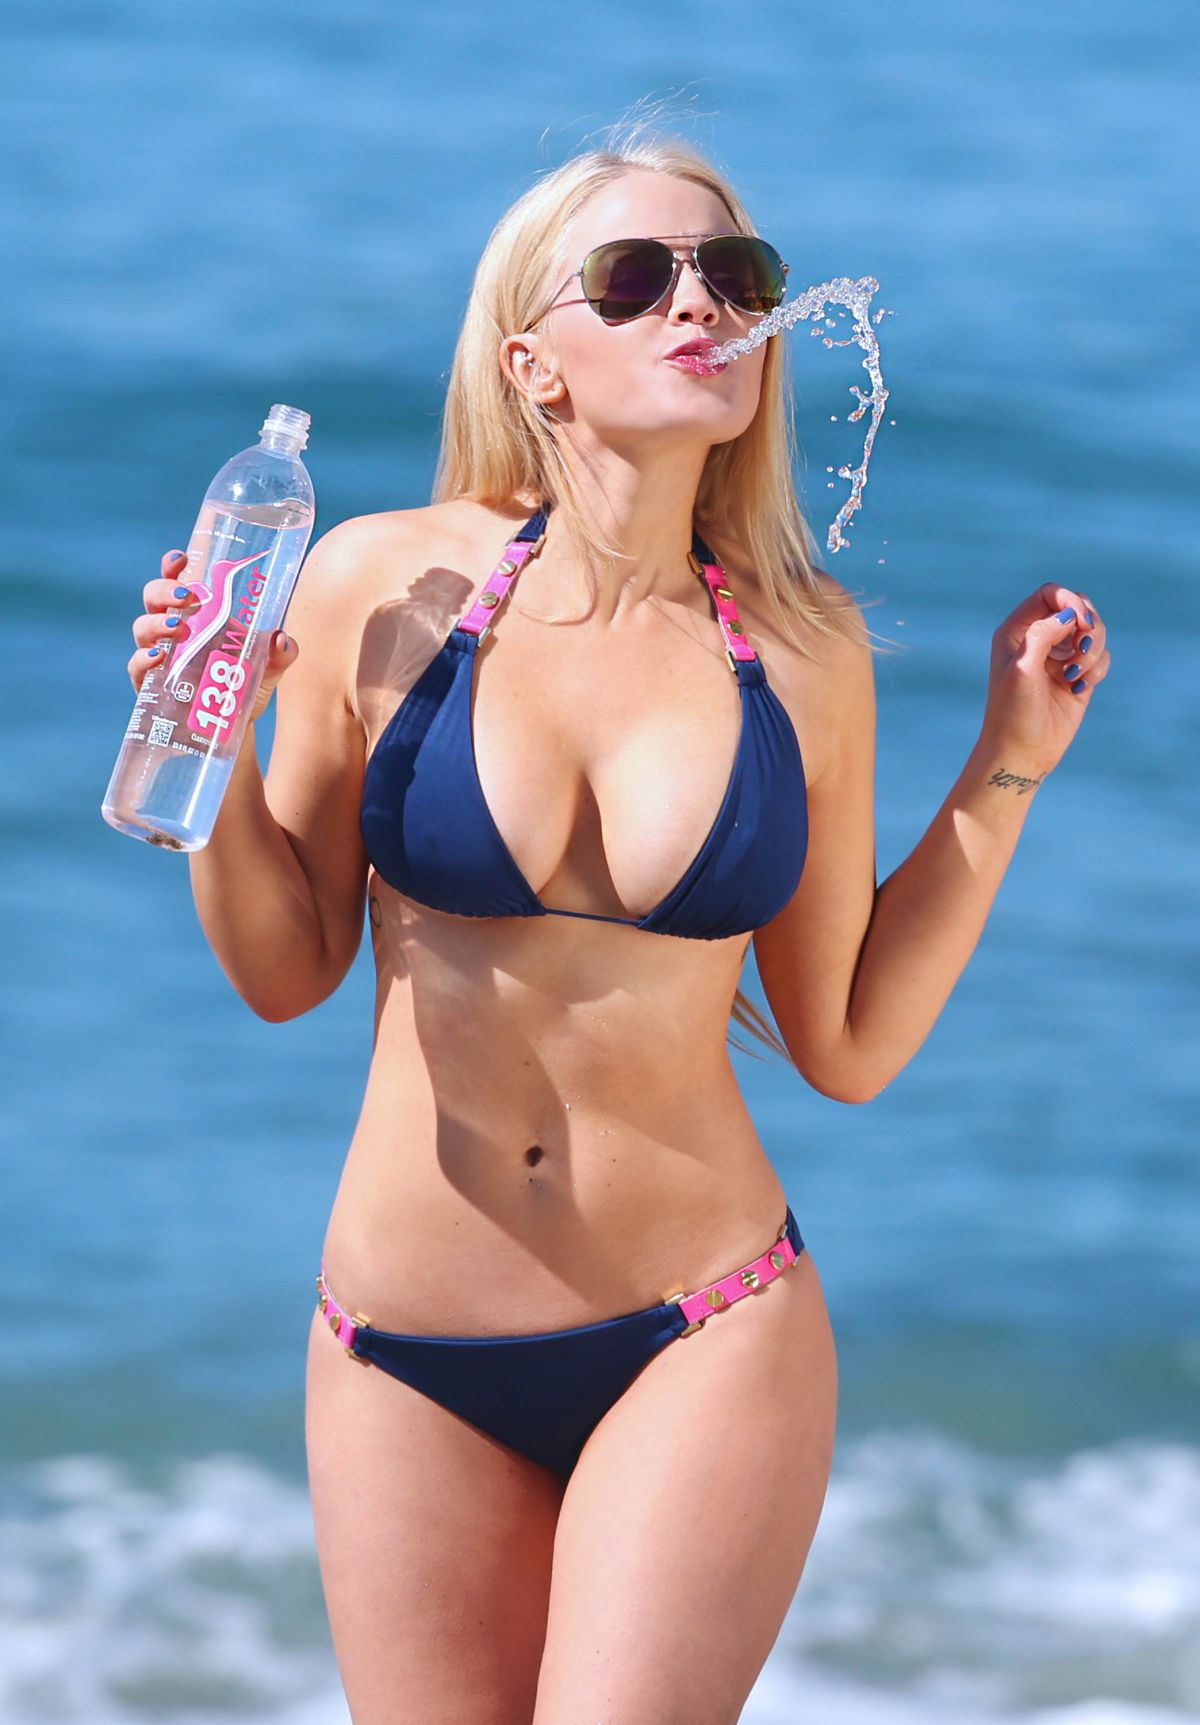 ANNA SOPHIA BERGLUND - 138 Water Photoshoot in Malibu 07/13/2015